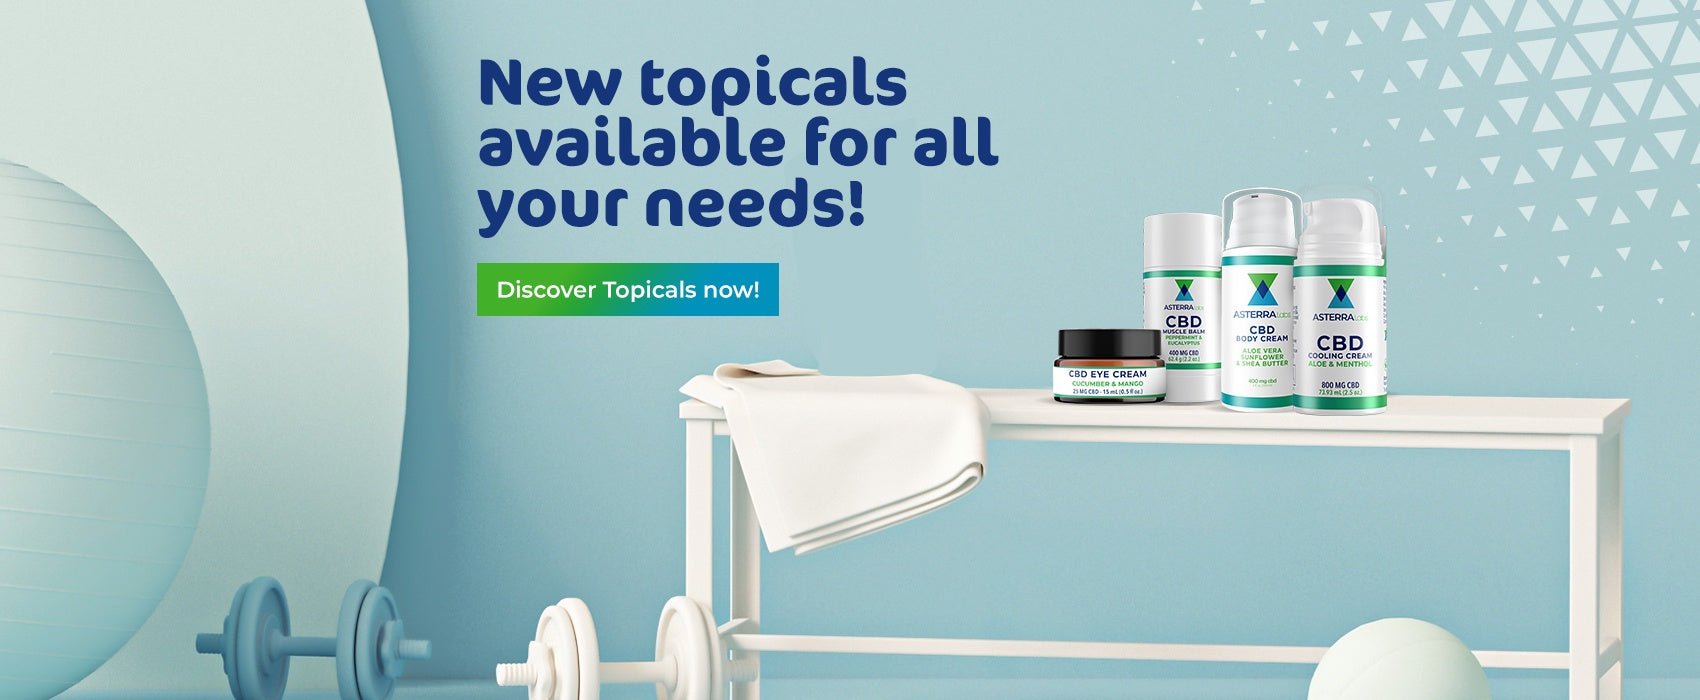 New topicals available for all your needs!